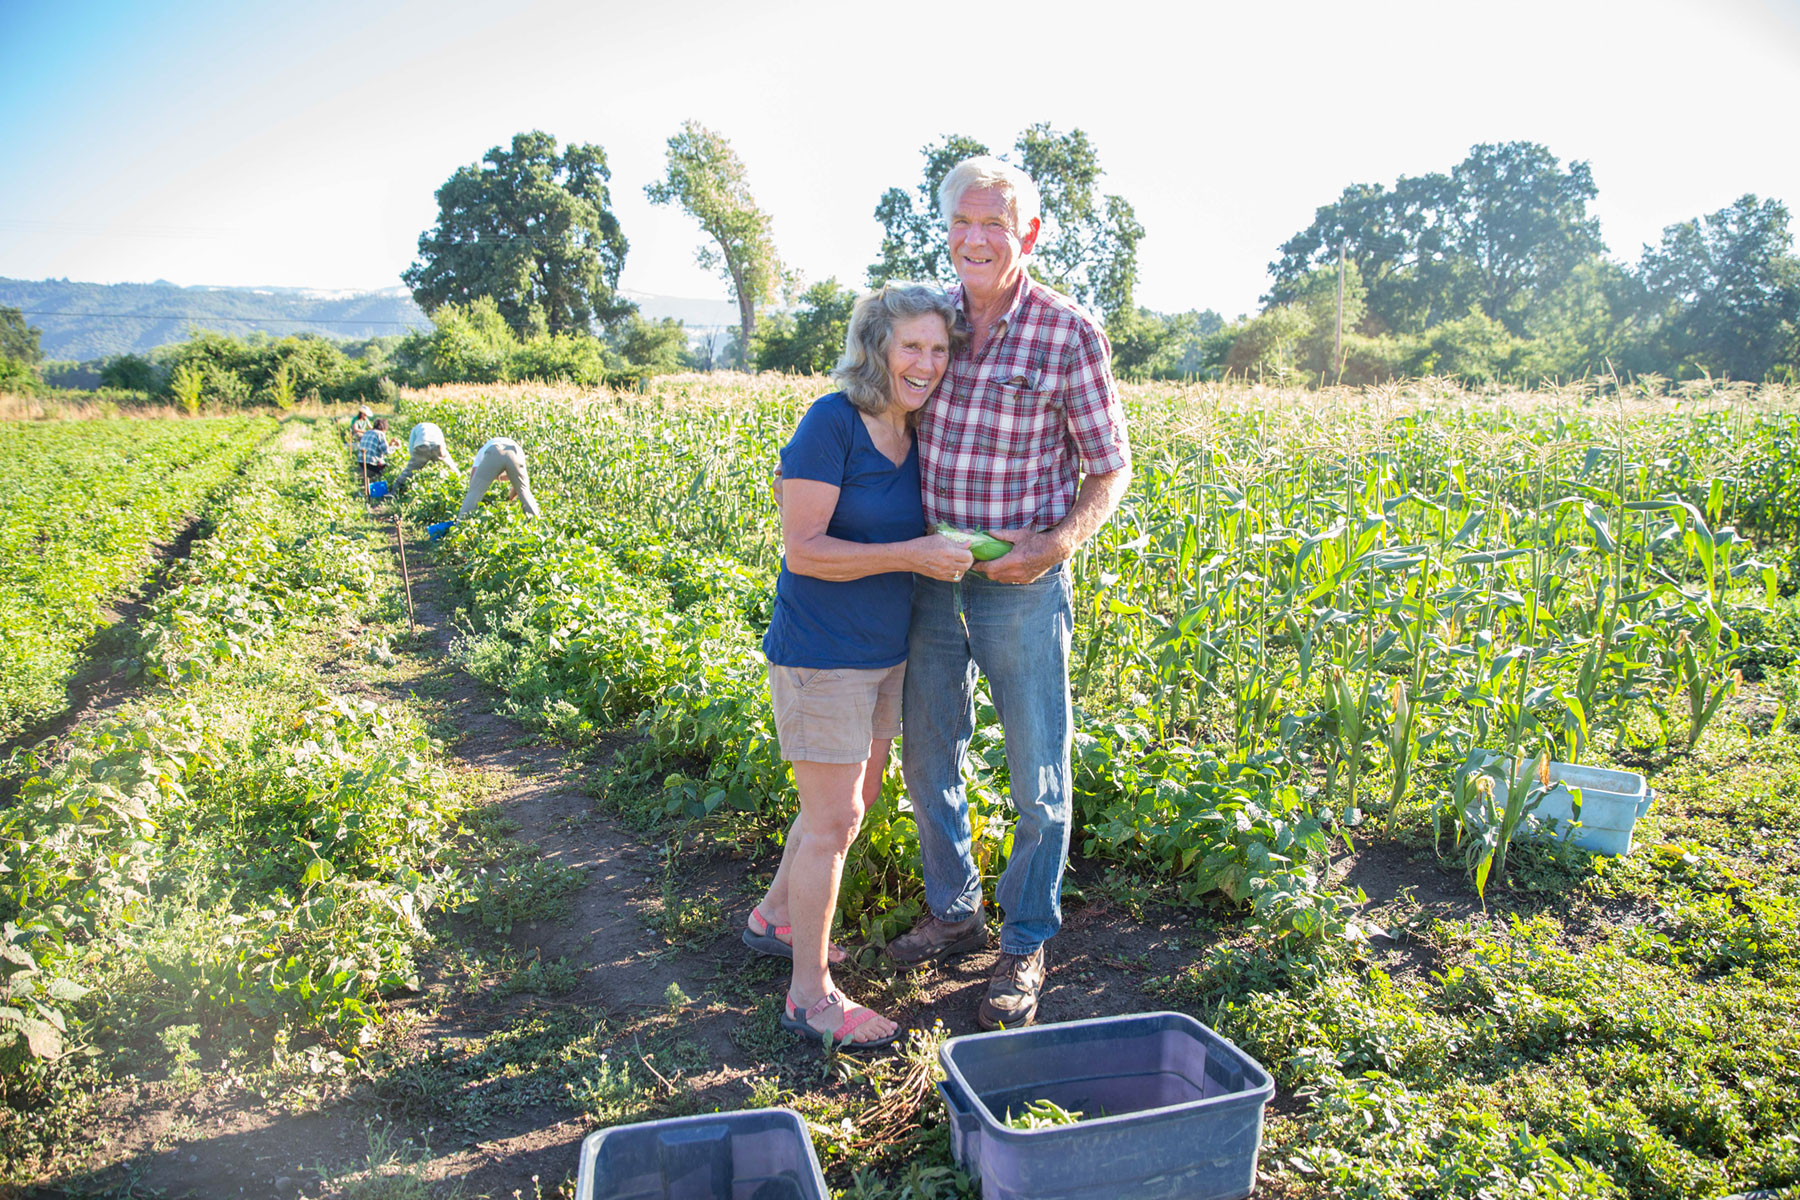 Gloria and Stephen Decater pause during a busy farming day.